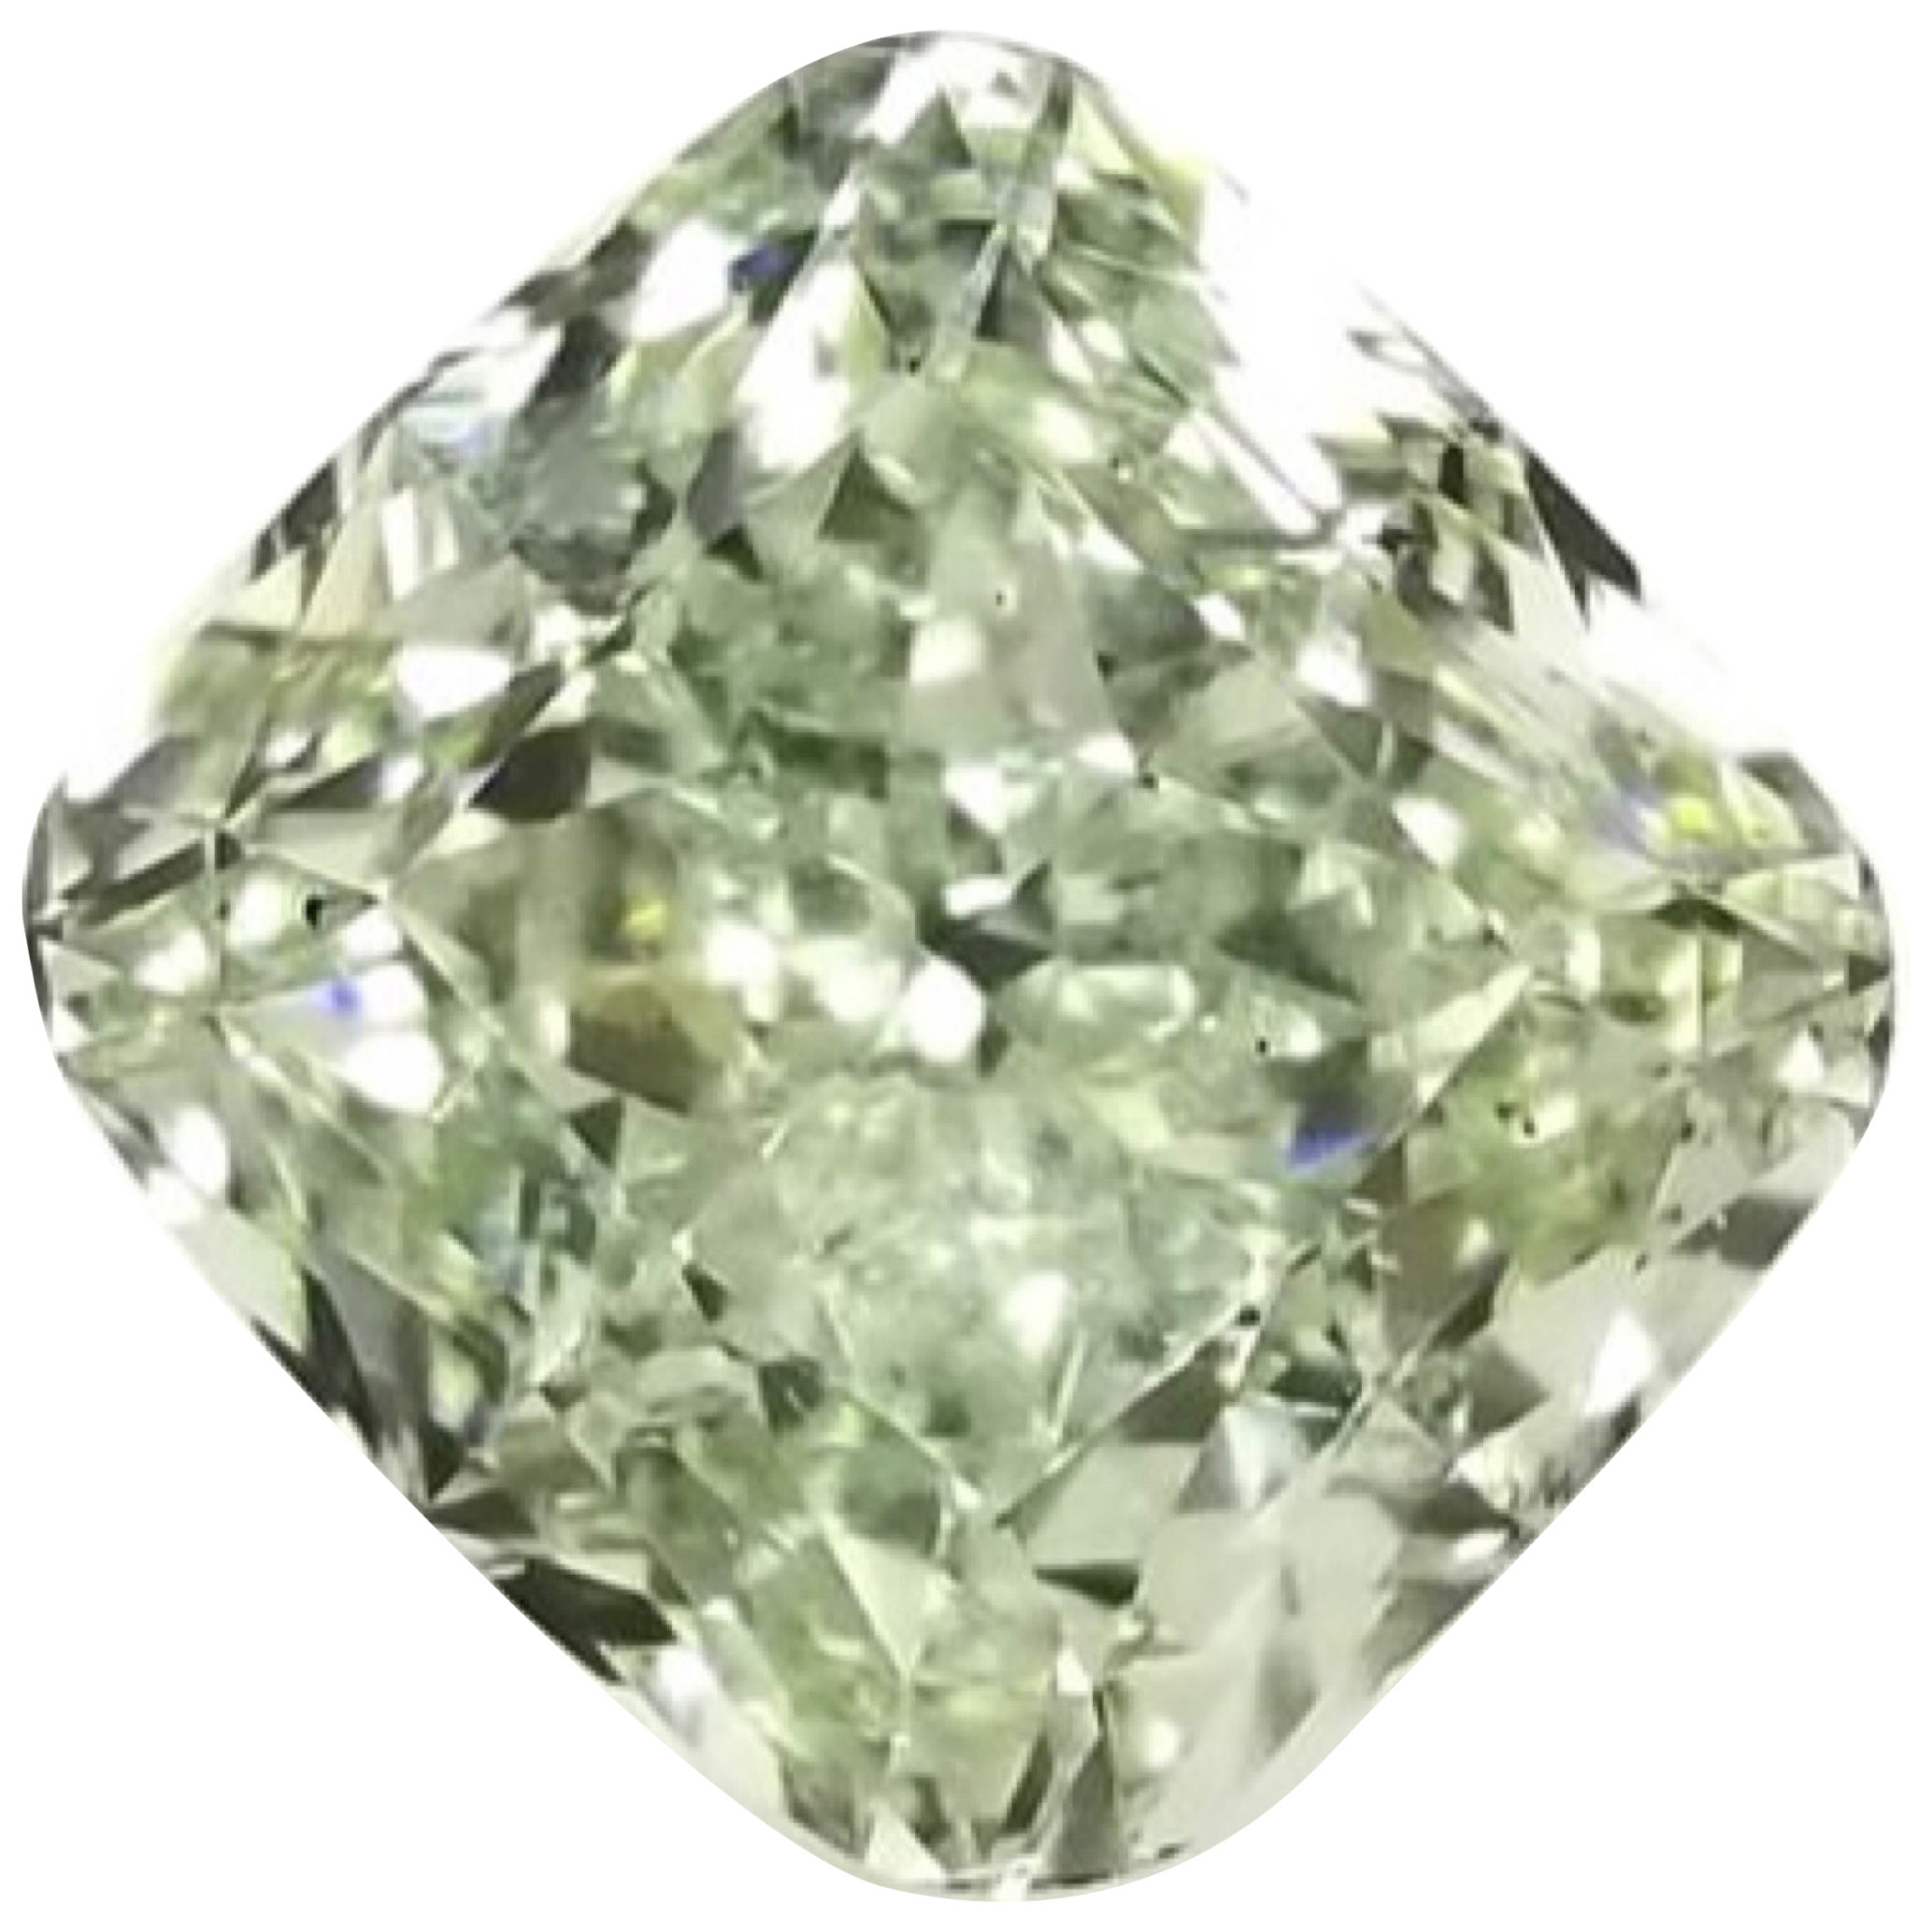 Emilio Jewelry GIA Certified 5.00 Carat Fancy Yellowish Green Diamond